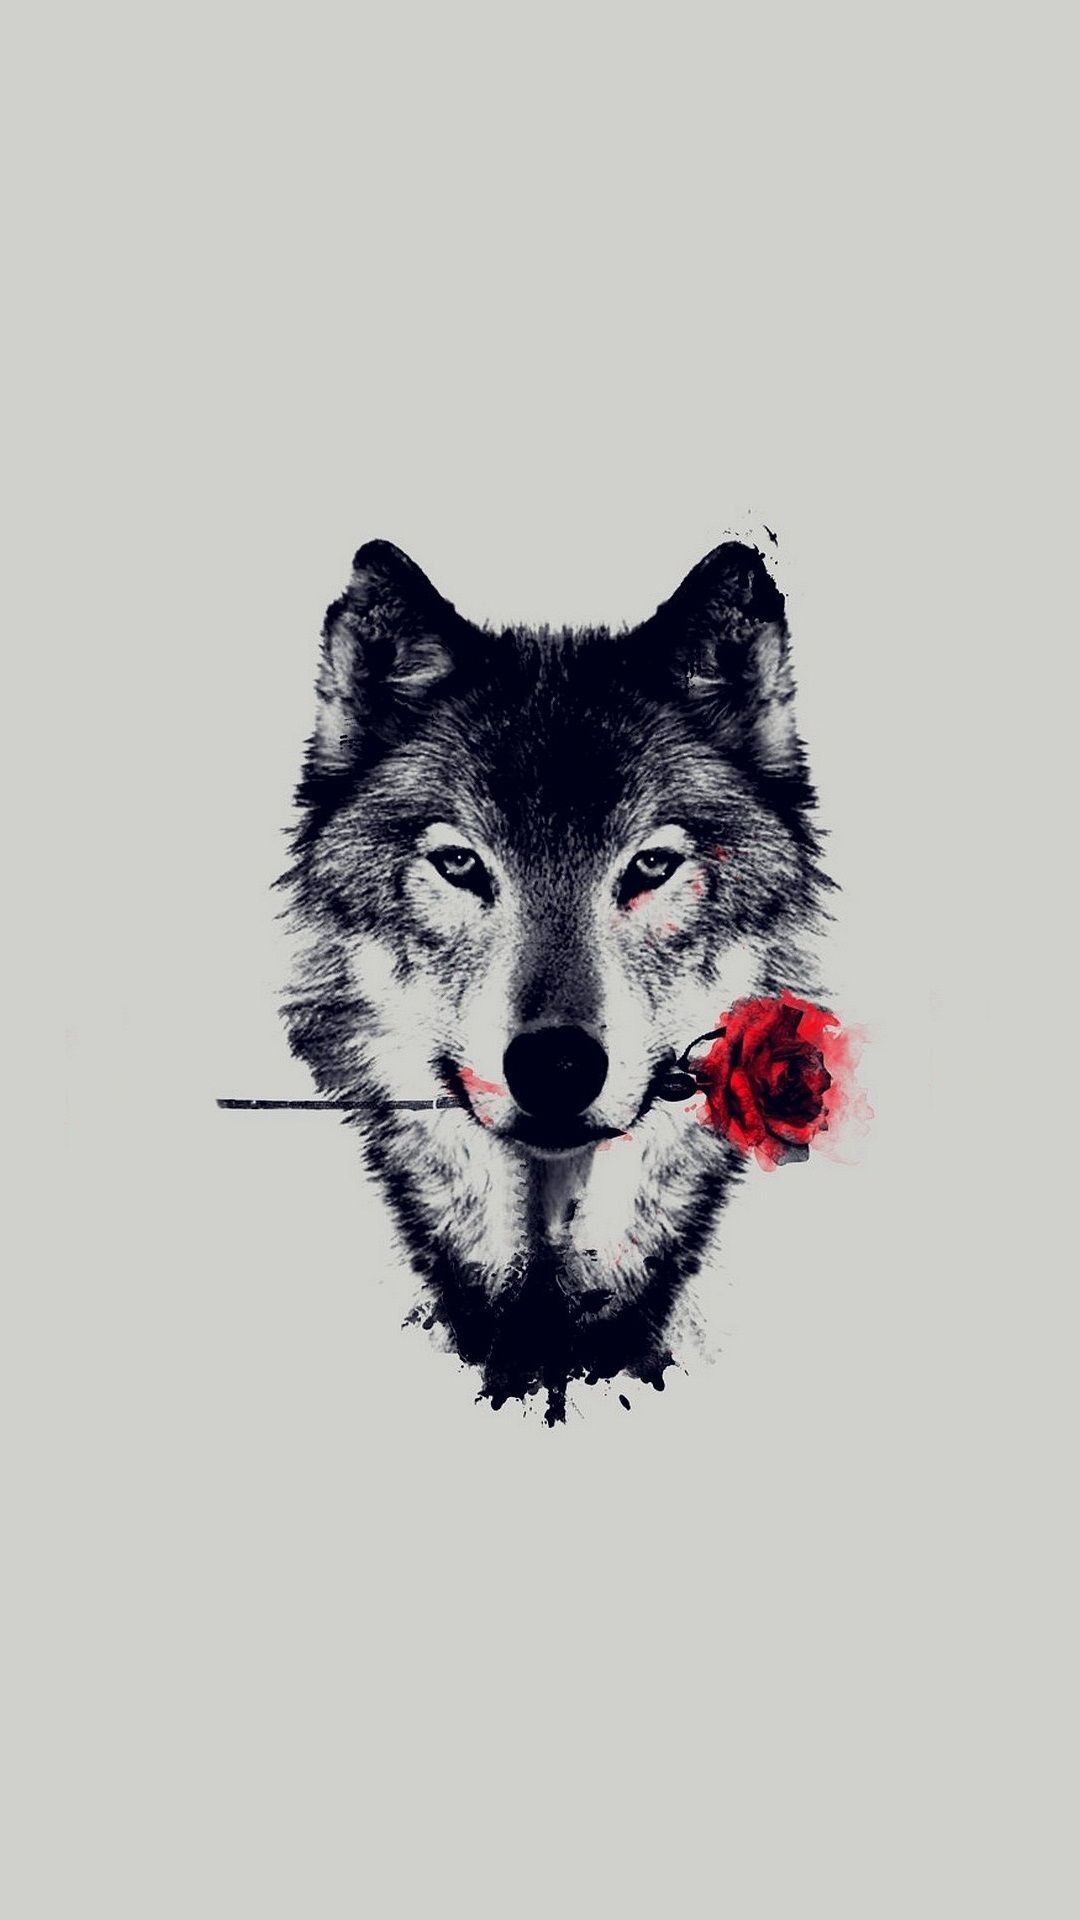 Wolf Wallpaper Hd For Iphone Wallpaper On Hupages Com If You Like It Dont Forget Save It Or Repin It Art Wallpaper Iphone Wolf Wallpaper Iphone Wallpaper Wolf